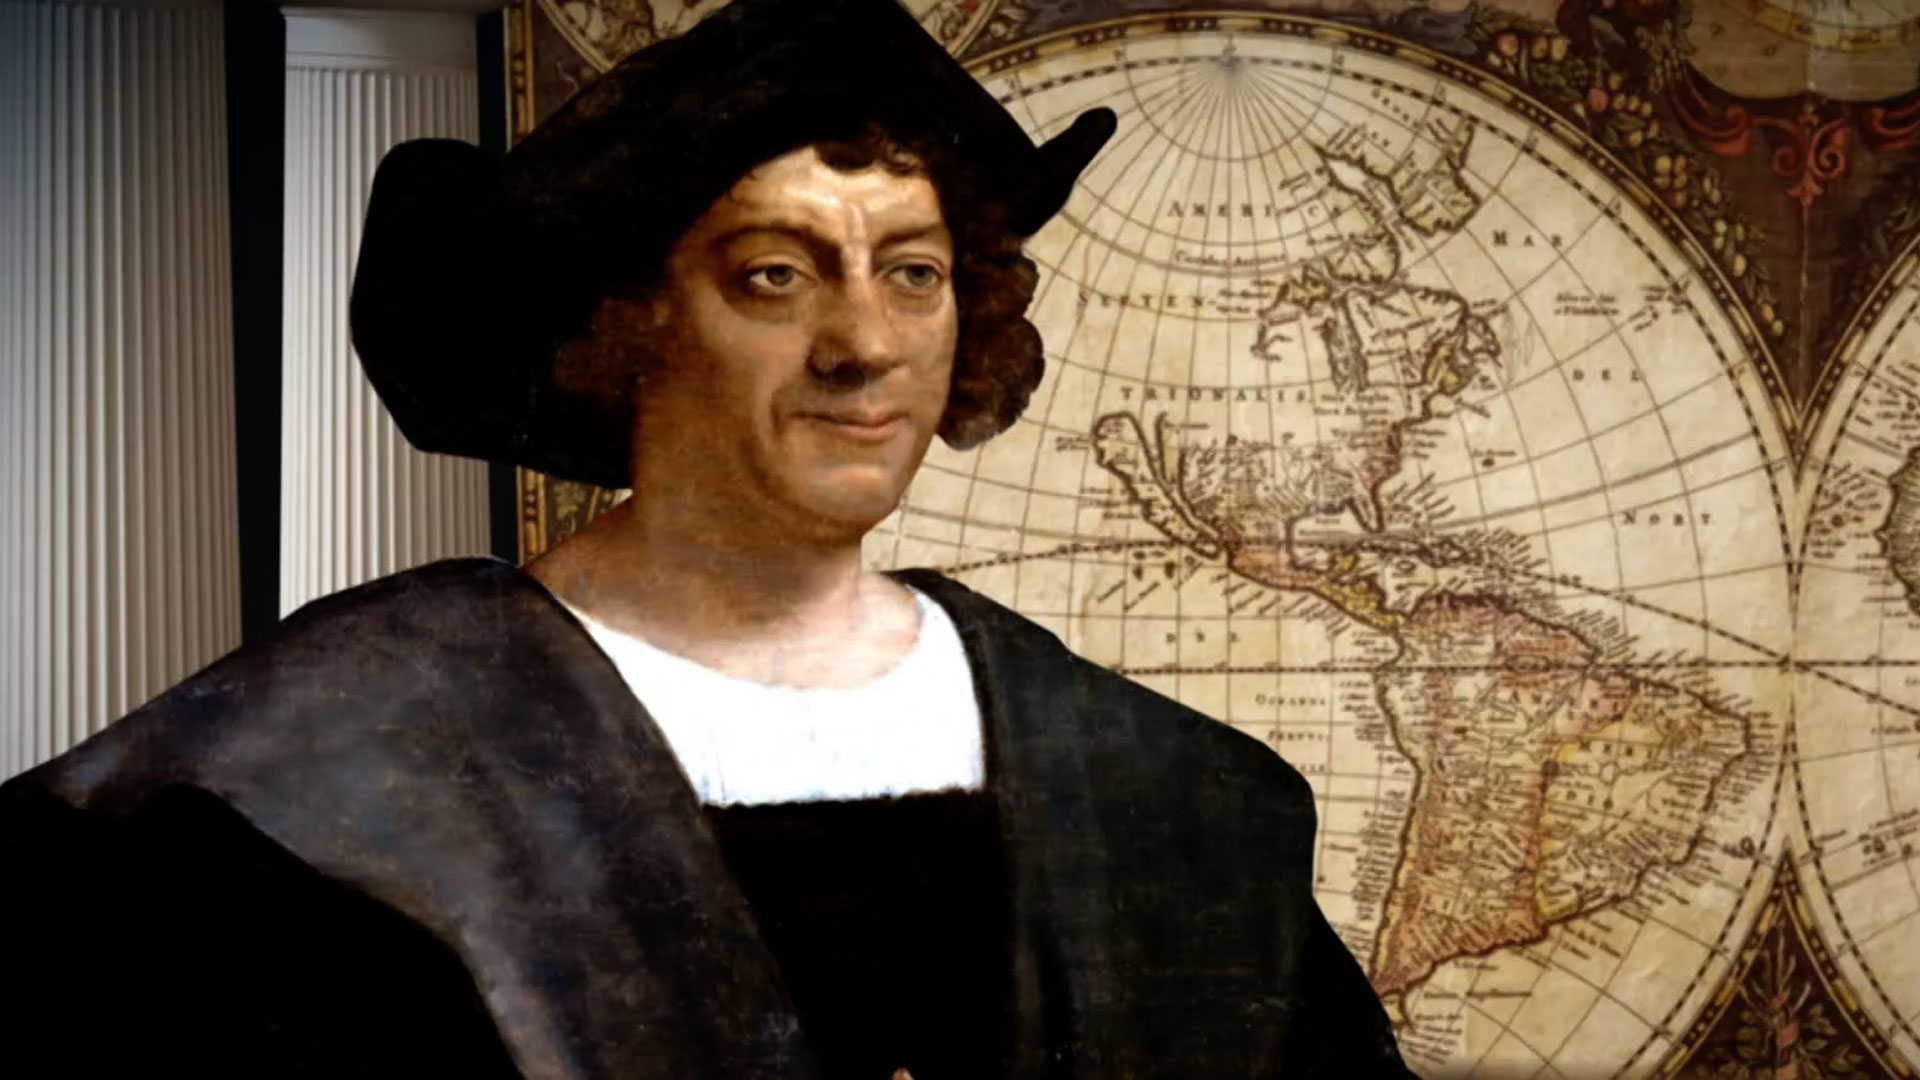 Christopher Columbus   People Famous For Things They Didn't Do   Brain Berries